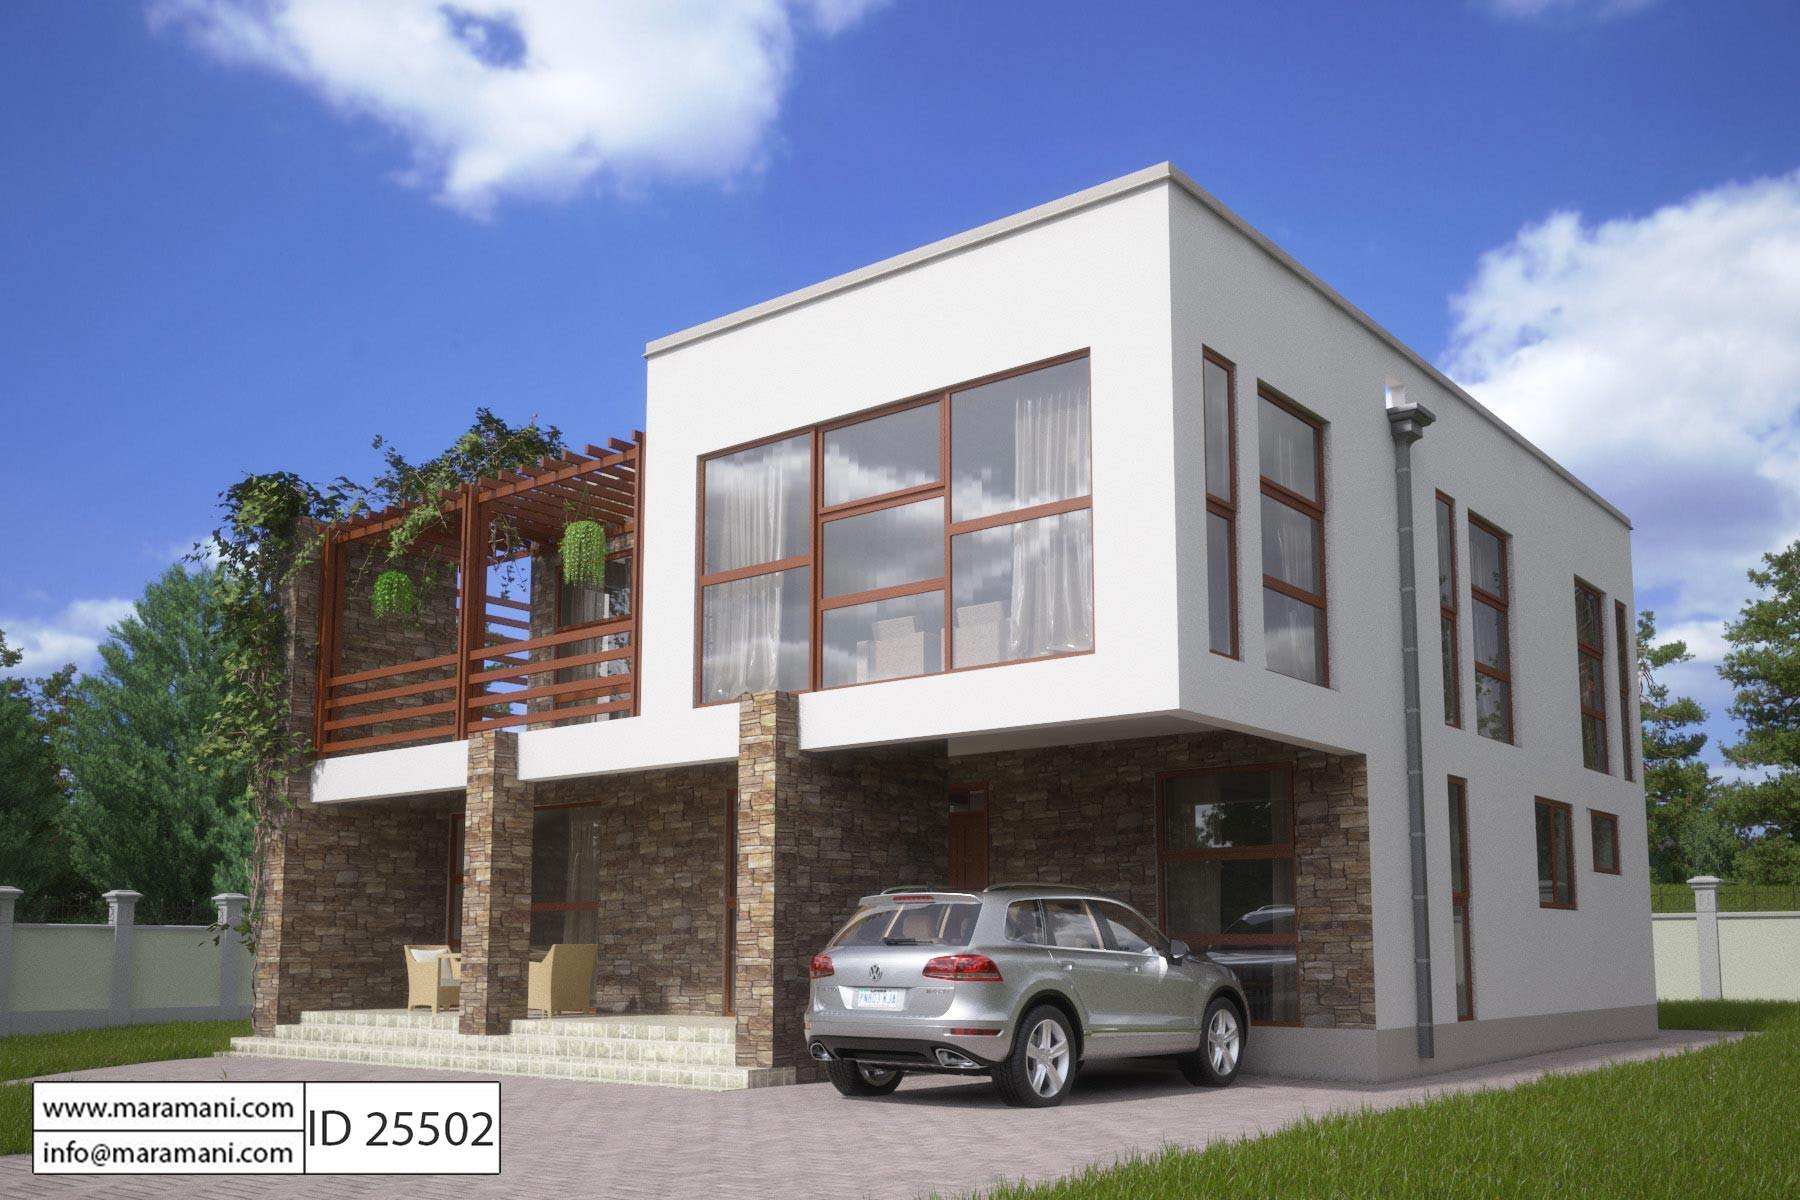 . 5 Bedroom Modern House Plan   ID 25502   Floor Plans by Maramani